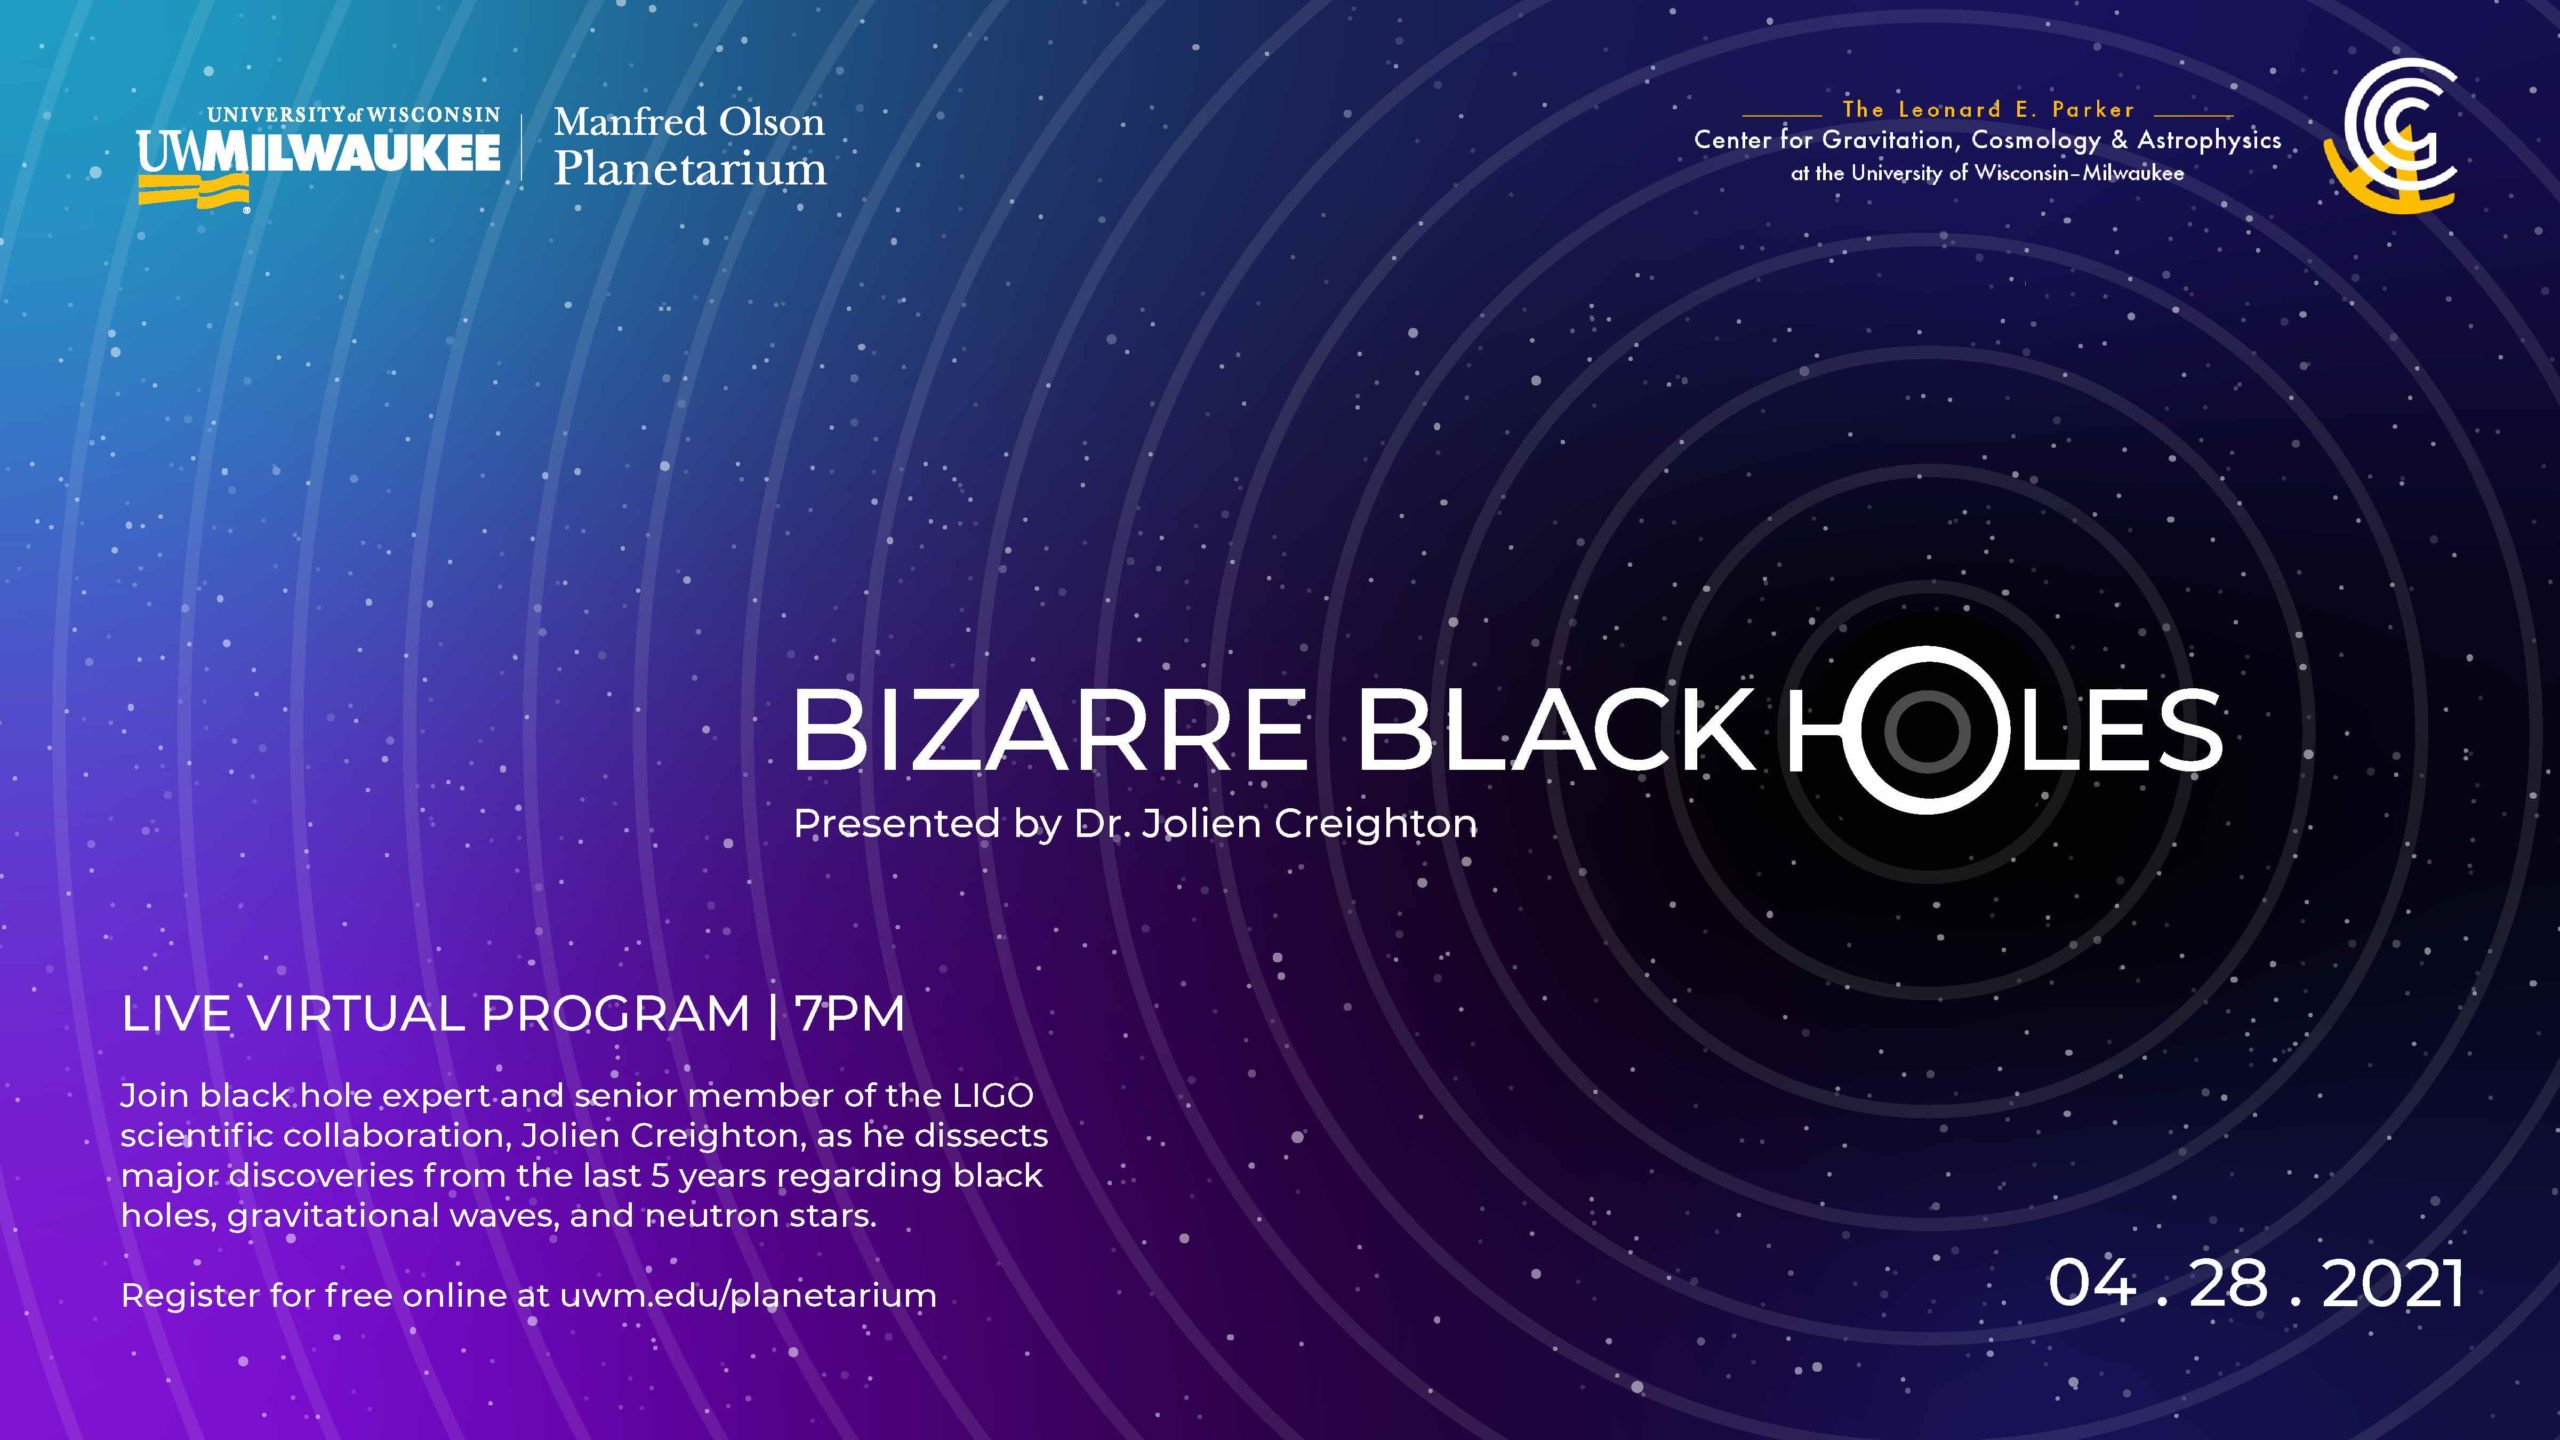 Bizarre Black Holes, April 28, 2021 virtual program